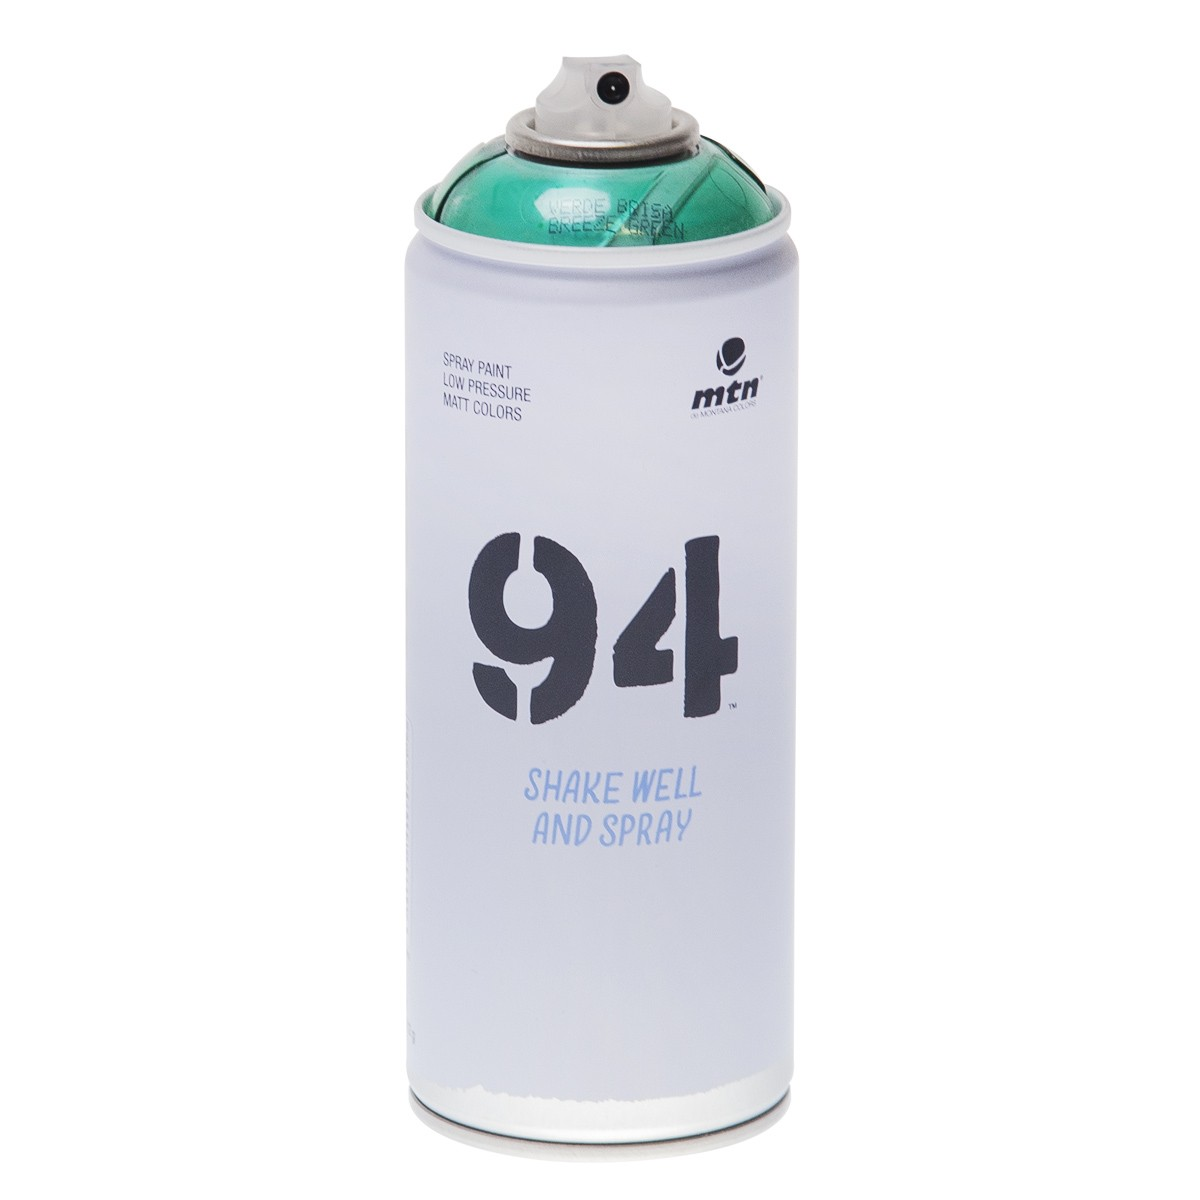 Bois Transparent Mtn 94